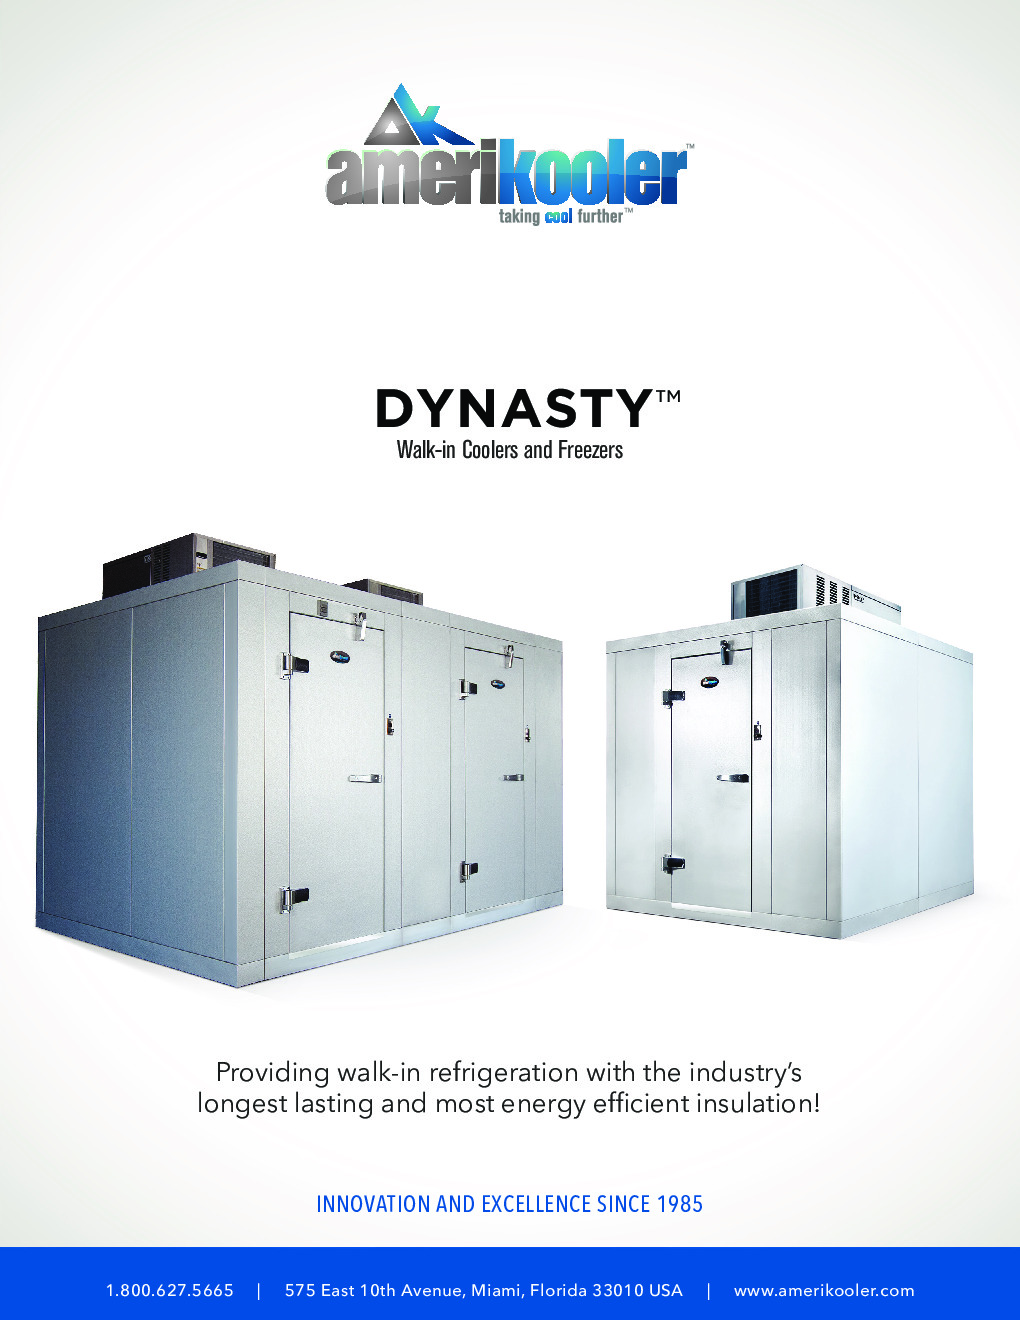 AmeriKooler DW061477N-7/7-SC 6' X 14' Walk-In Cooler, 7' L Cooler without Floor and 7' L Freezer, Self Contained